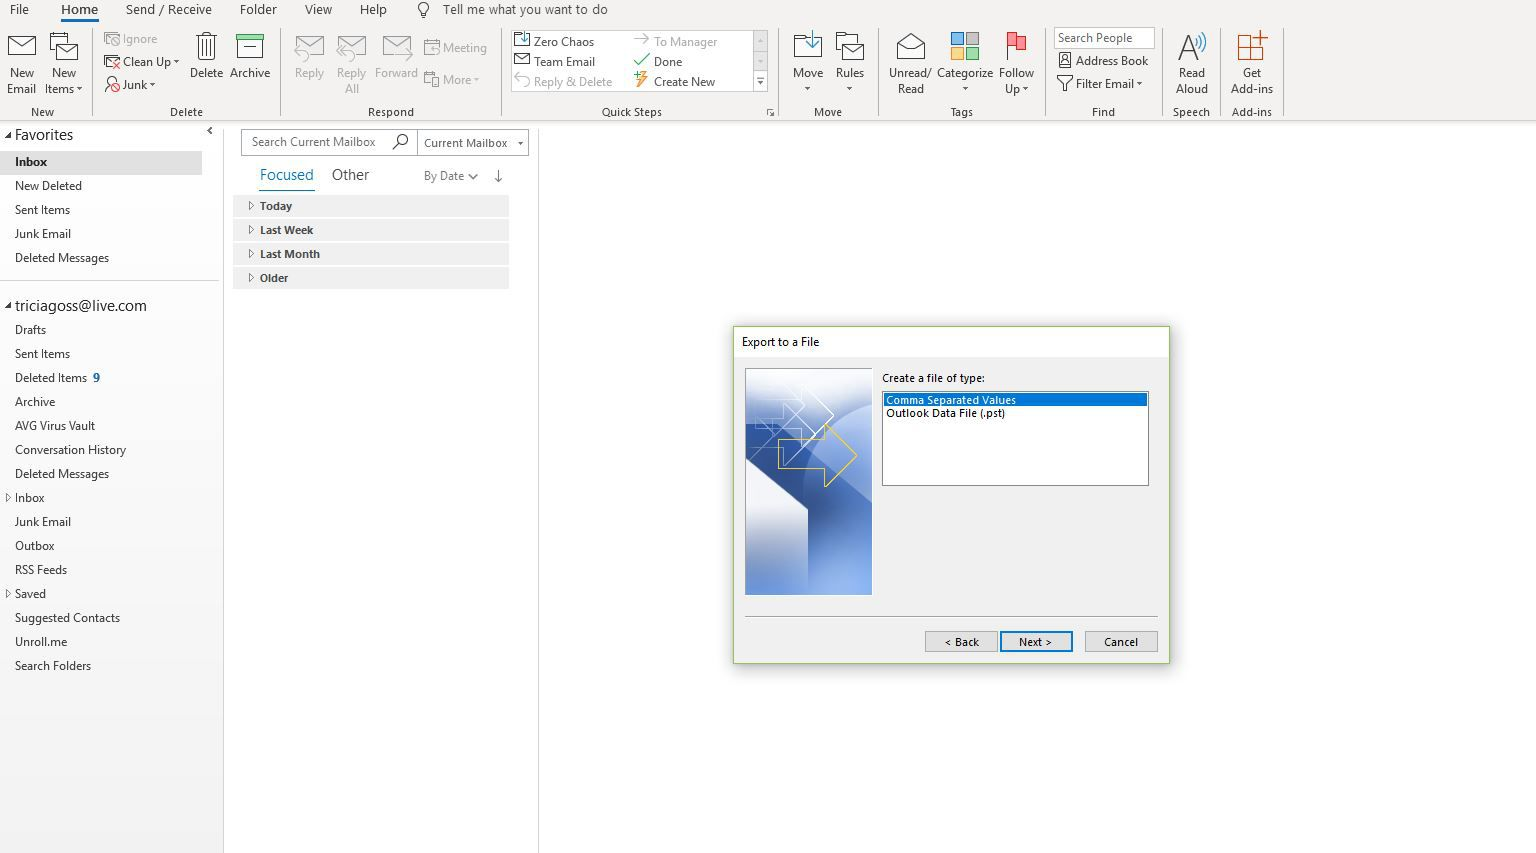 Export a file window with Comma Separated Values selected in Outlook